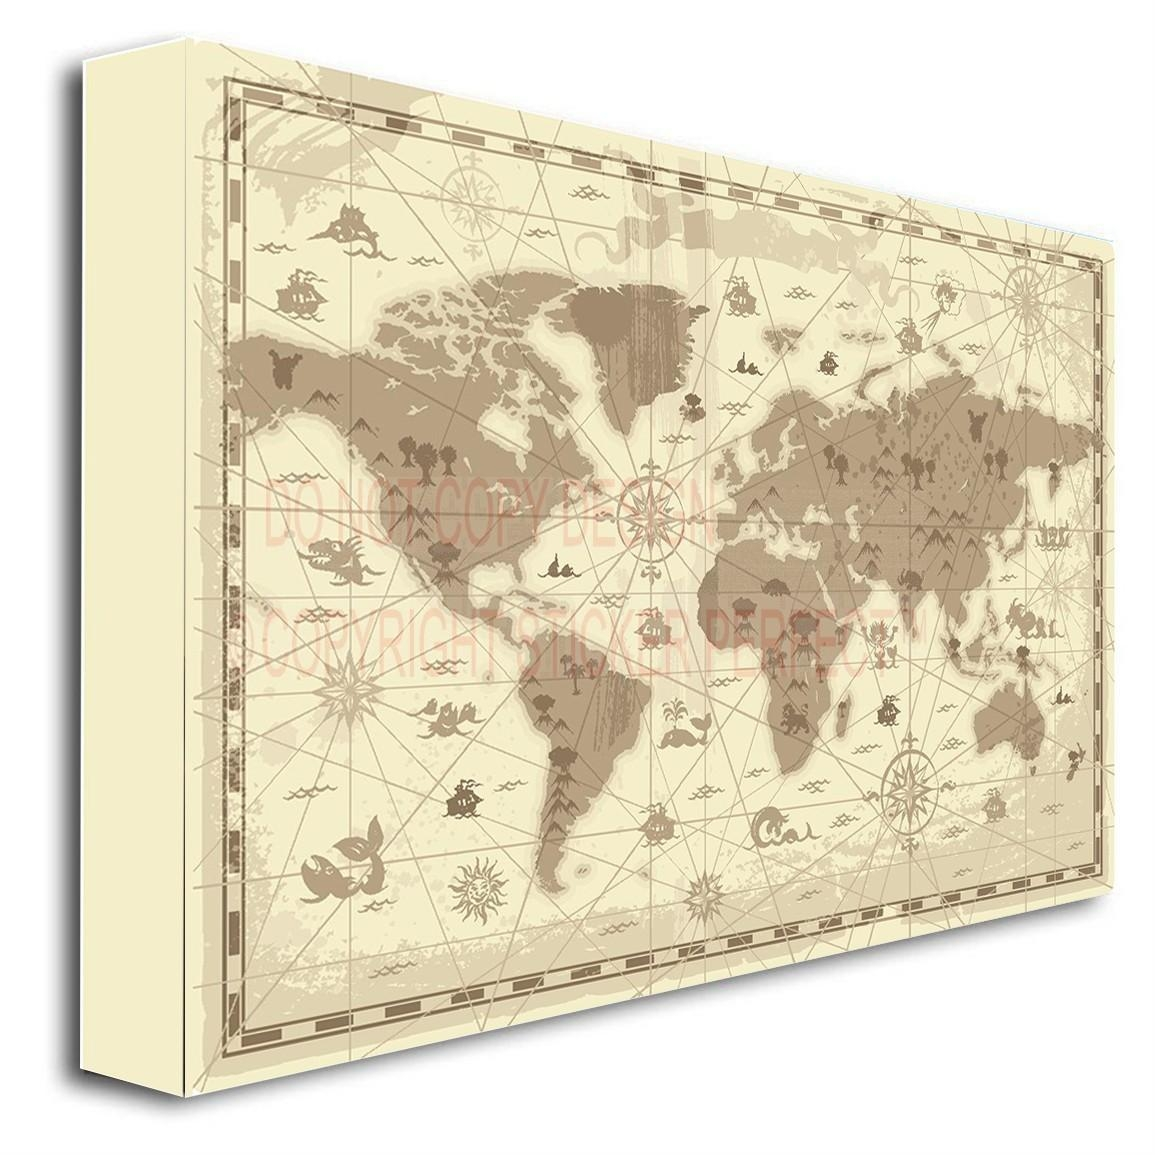 Framed Canvas Print World Map Kids Children Learning Cute Wall Art Pertaining To Framed World Map Wall Art (Image 4 of 20)